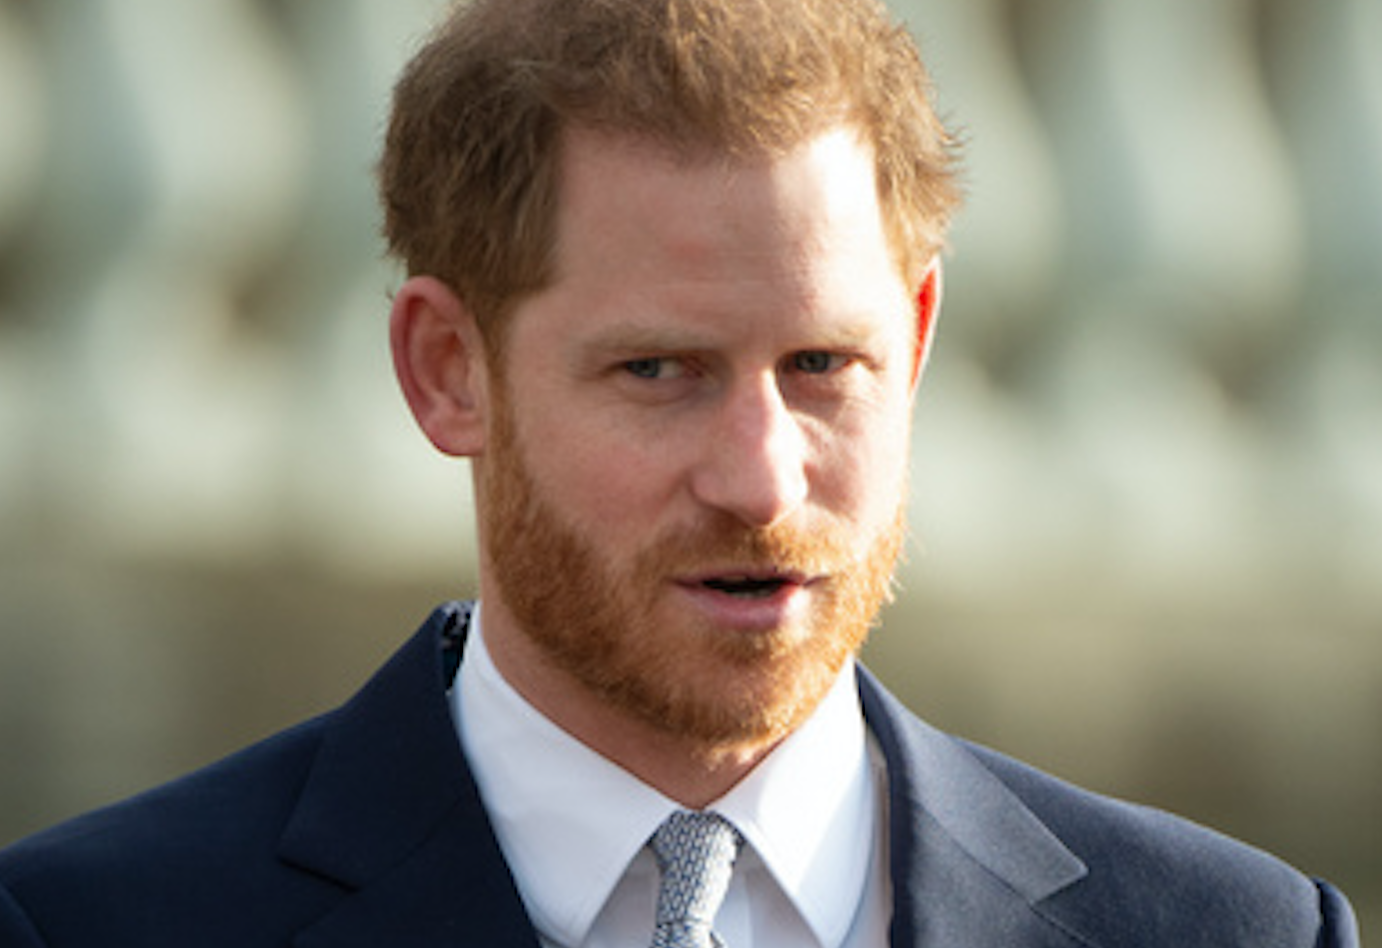 Prince Harry's dream job revealed: Royal 'just wanted to get away from the glare of the spotlight in Africa'